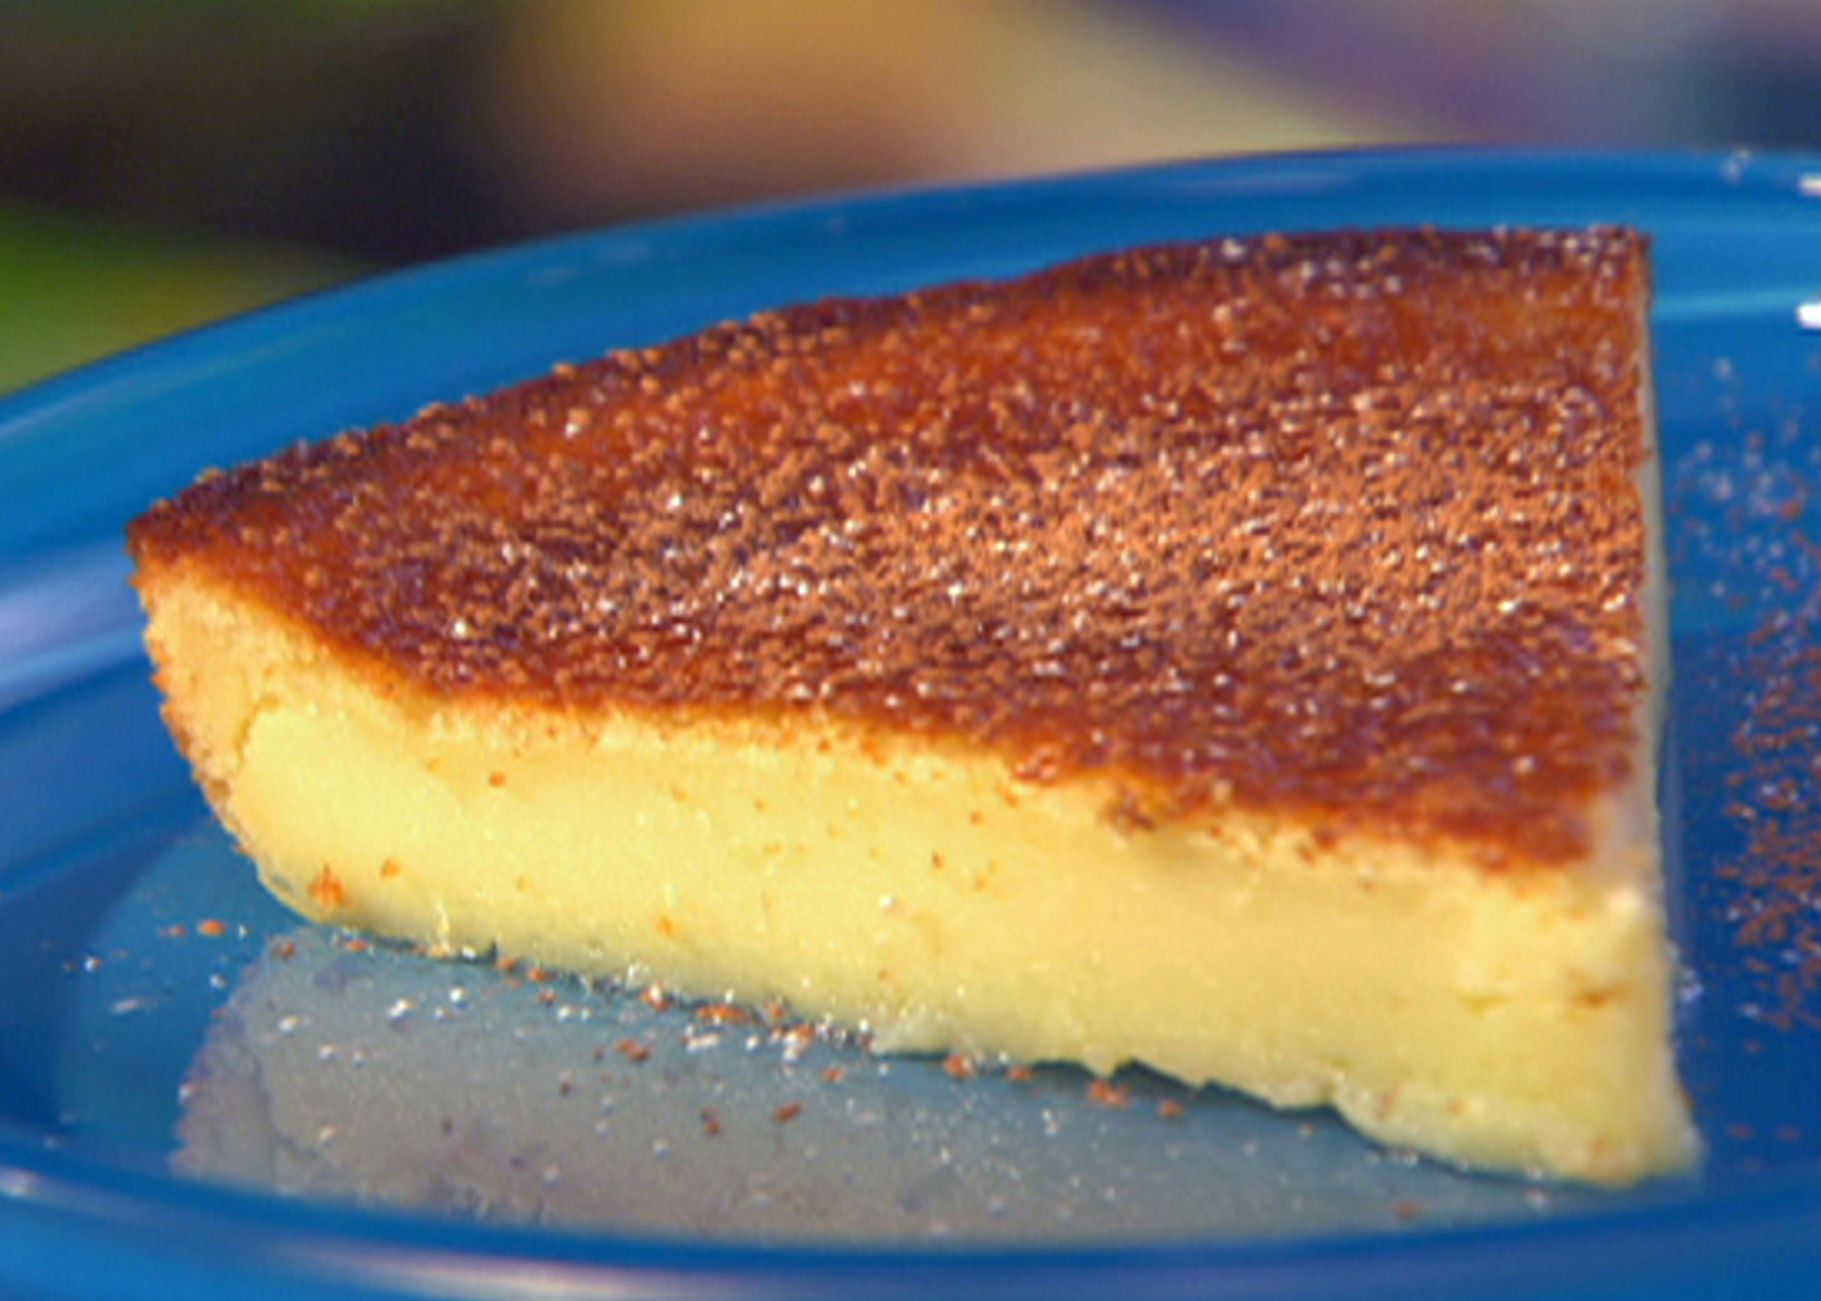 Anita S Impossible Buttermilk Pie Recipe Buttermilk Pie Buttermilk Pie Recipe Pie Recipes